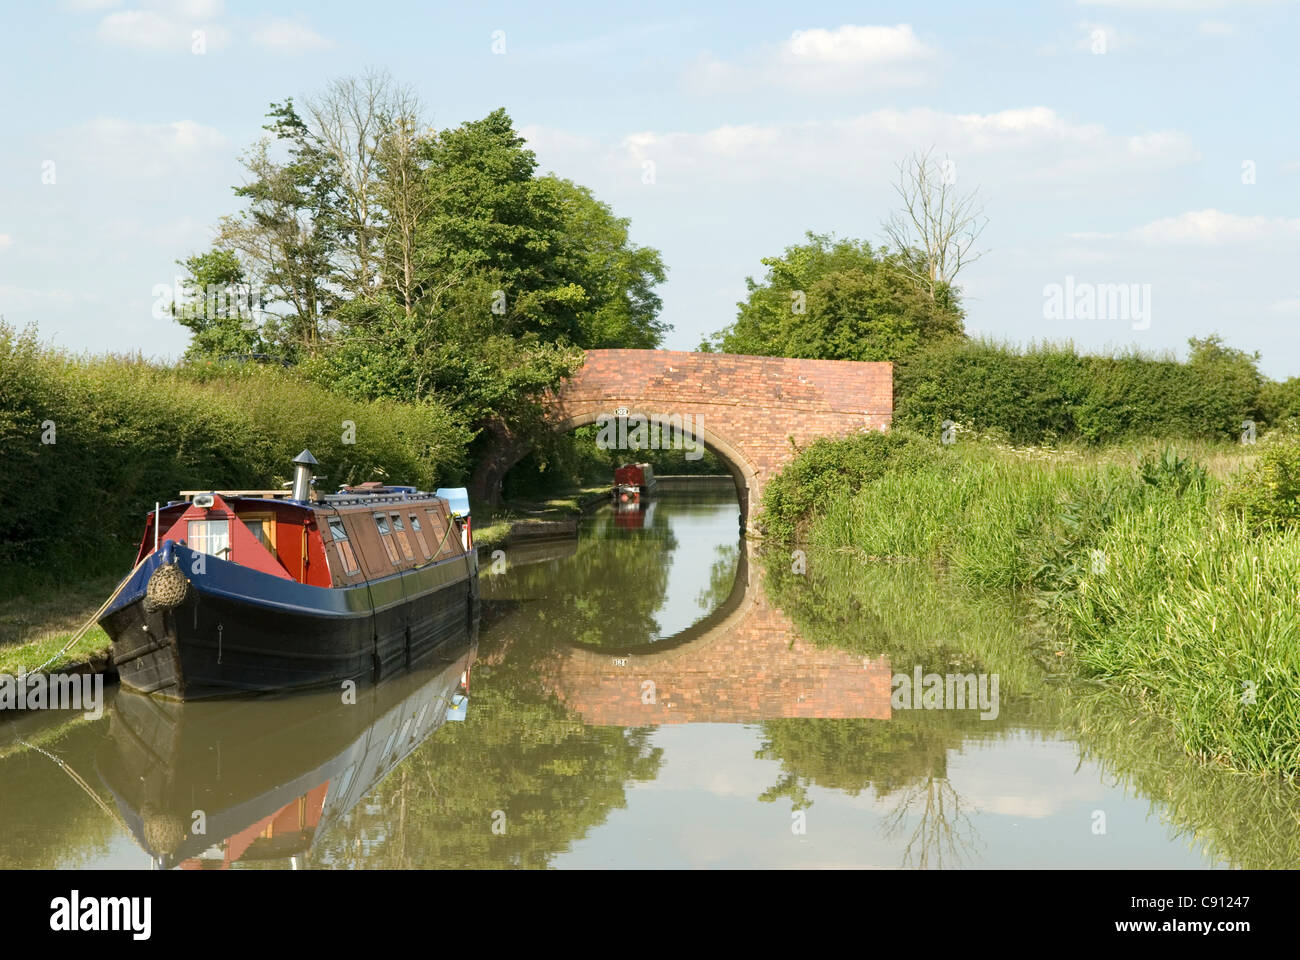 There are many historic small stone bridges and crossings over the canal on the route of the Grand Union Canal which Stock Photo